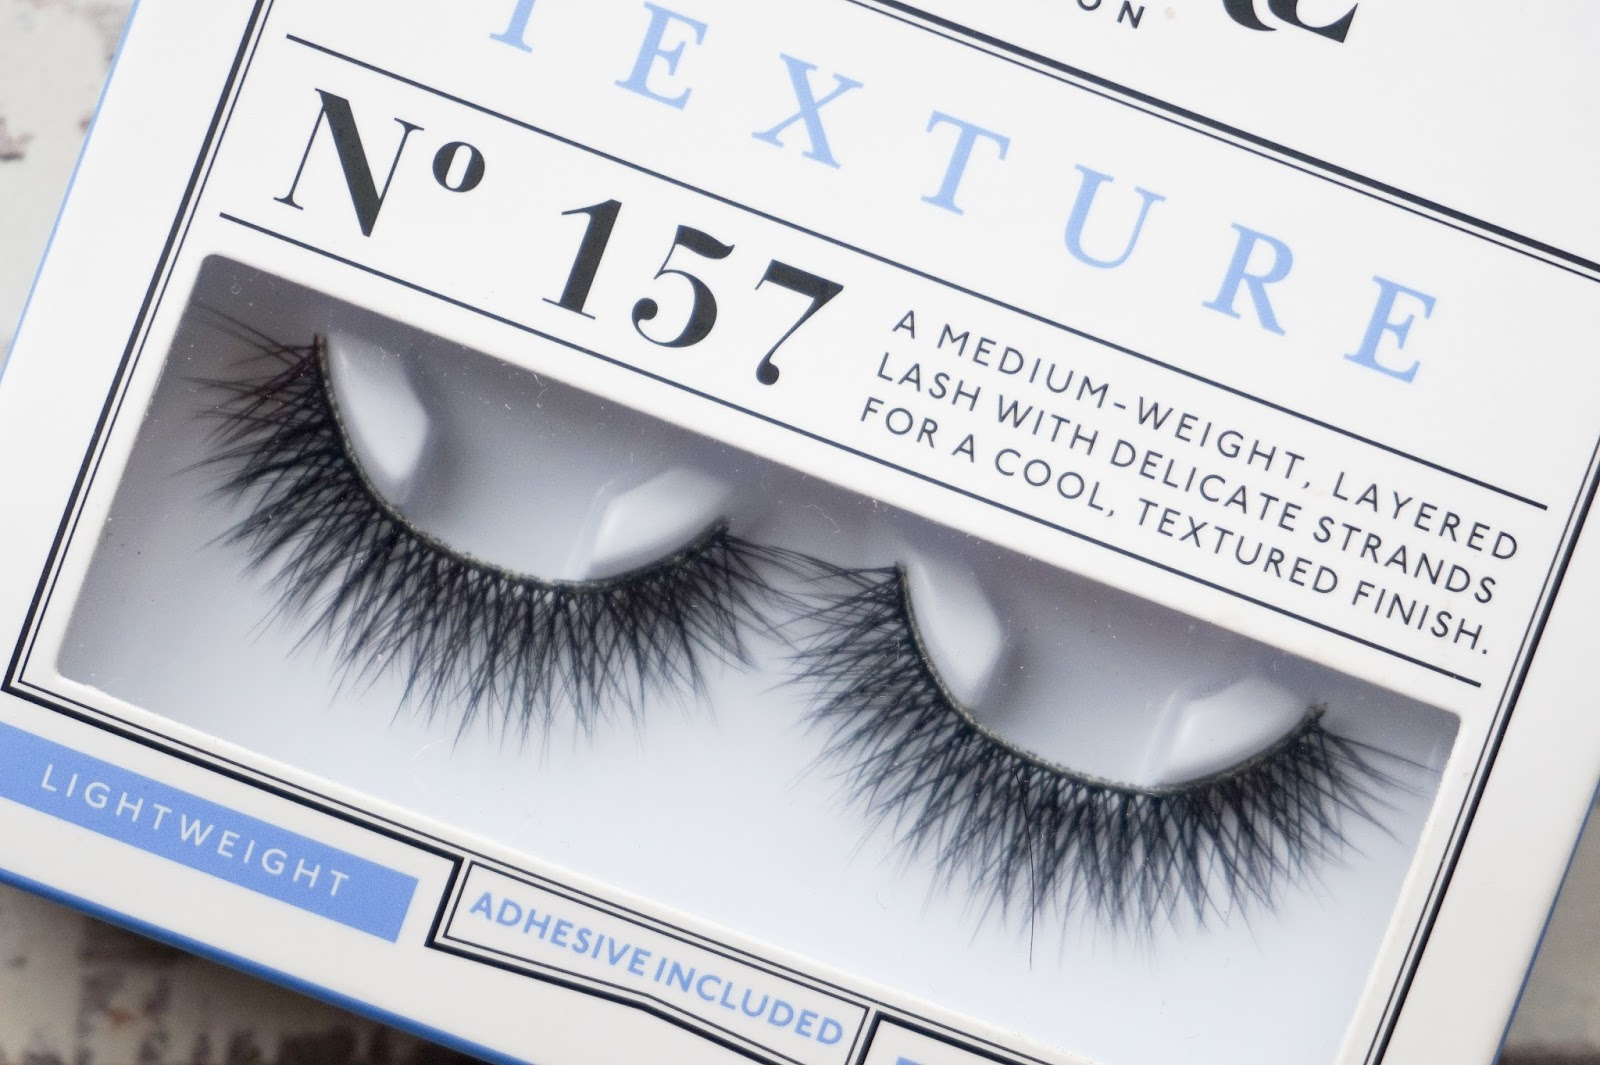 eylure 157 review vegas nay grand glamor natural lashes lengthening texture